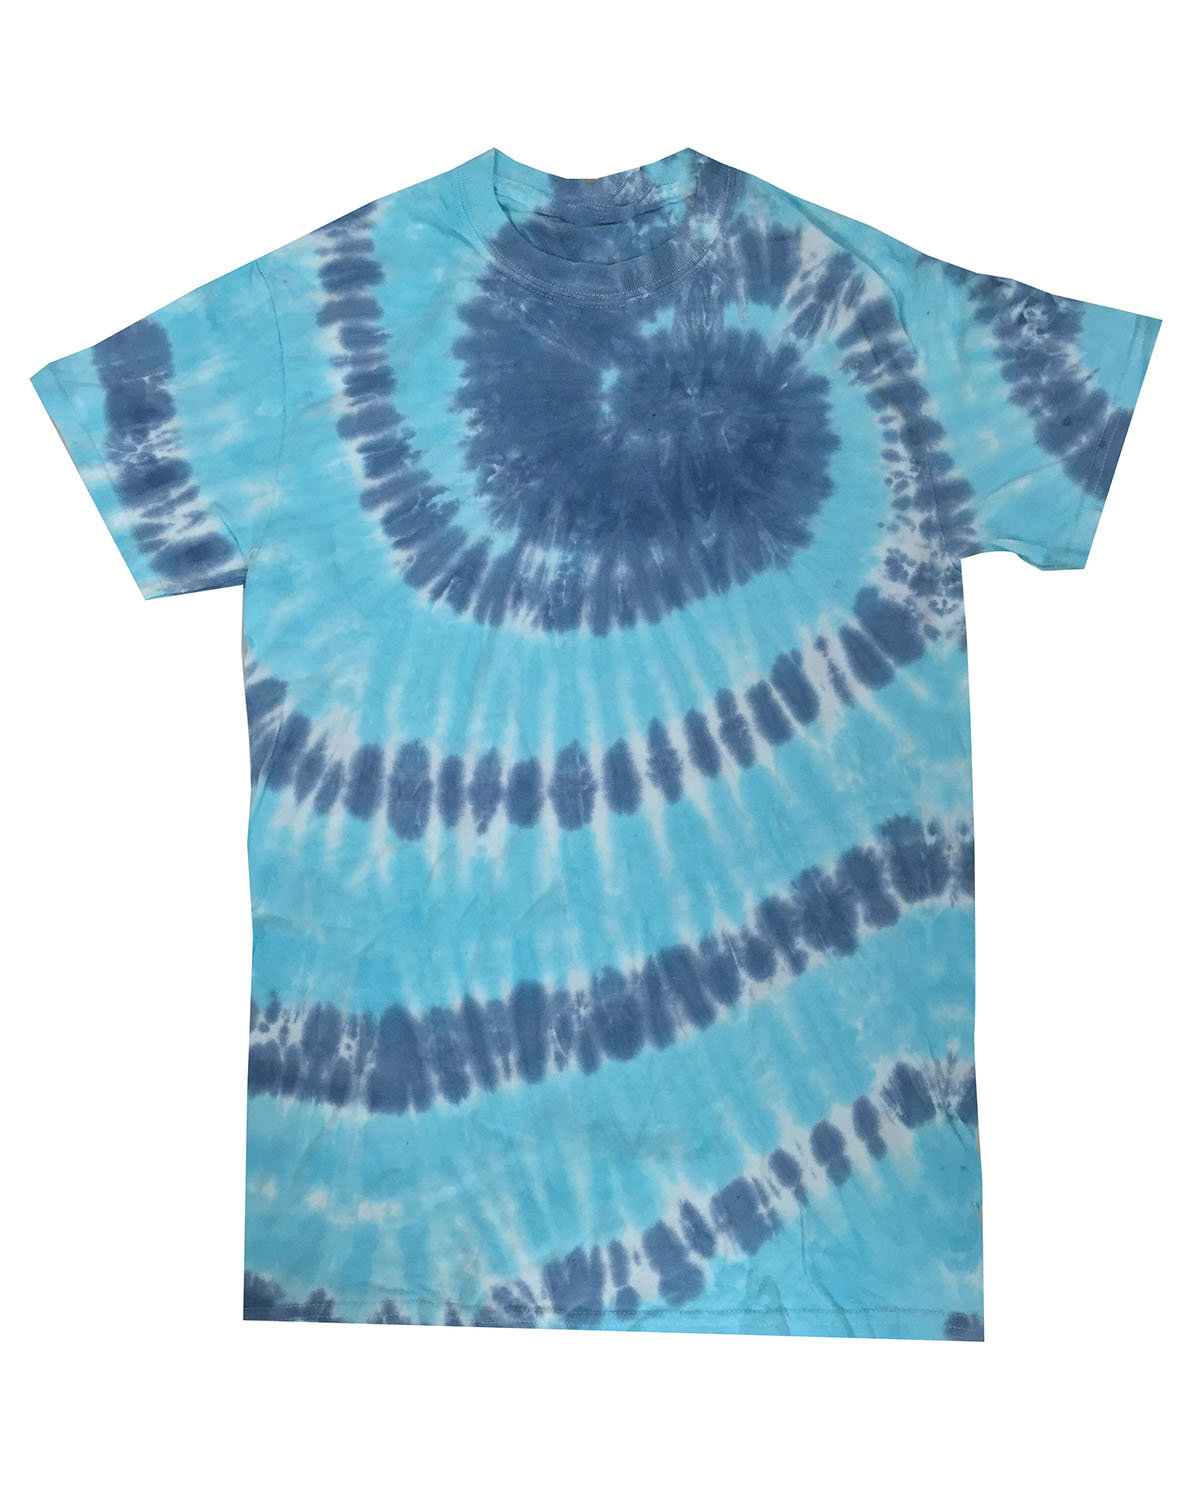 Tie-Dye Adult 5.4 oz., 100% Cotton T-Shirt CORAL REEF